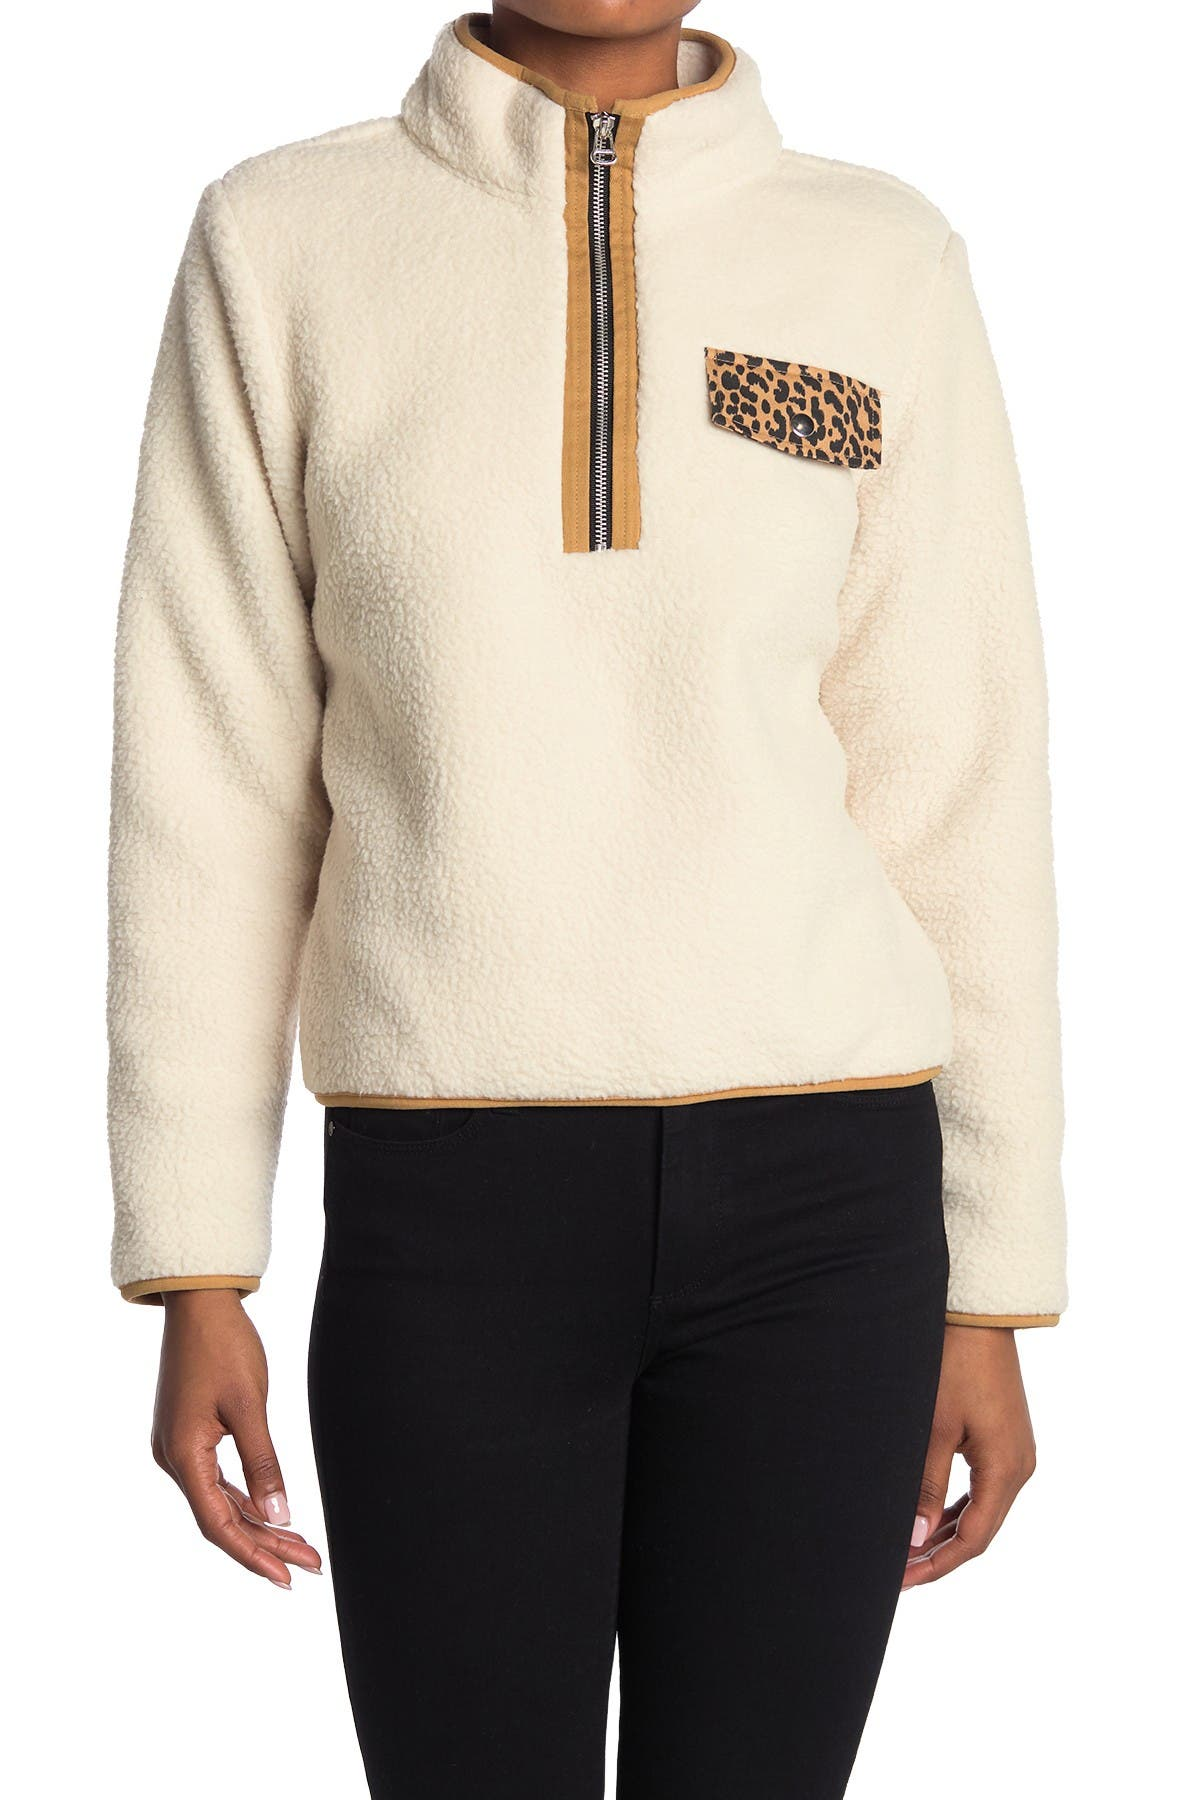 Image of ROW A Faux Shearling Jacket